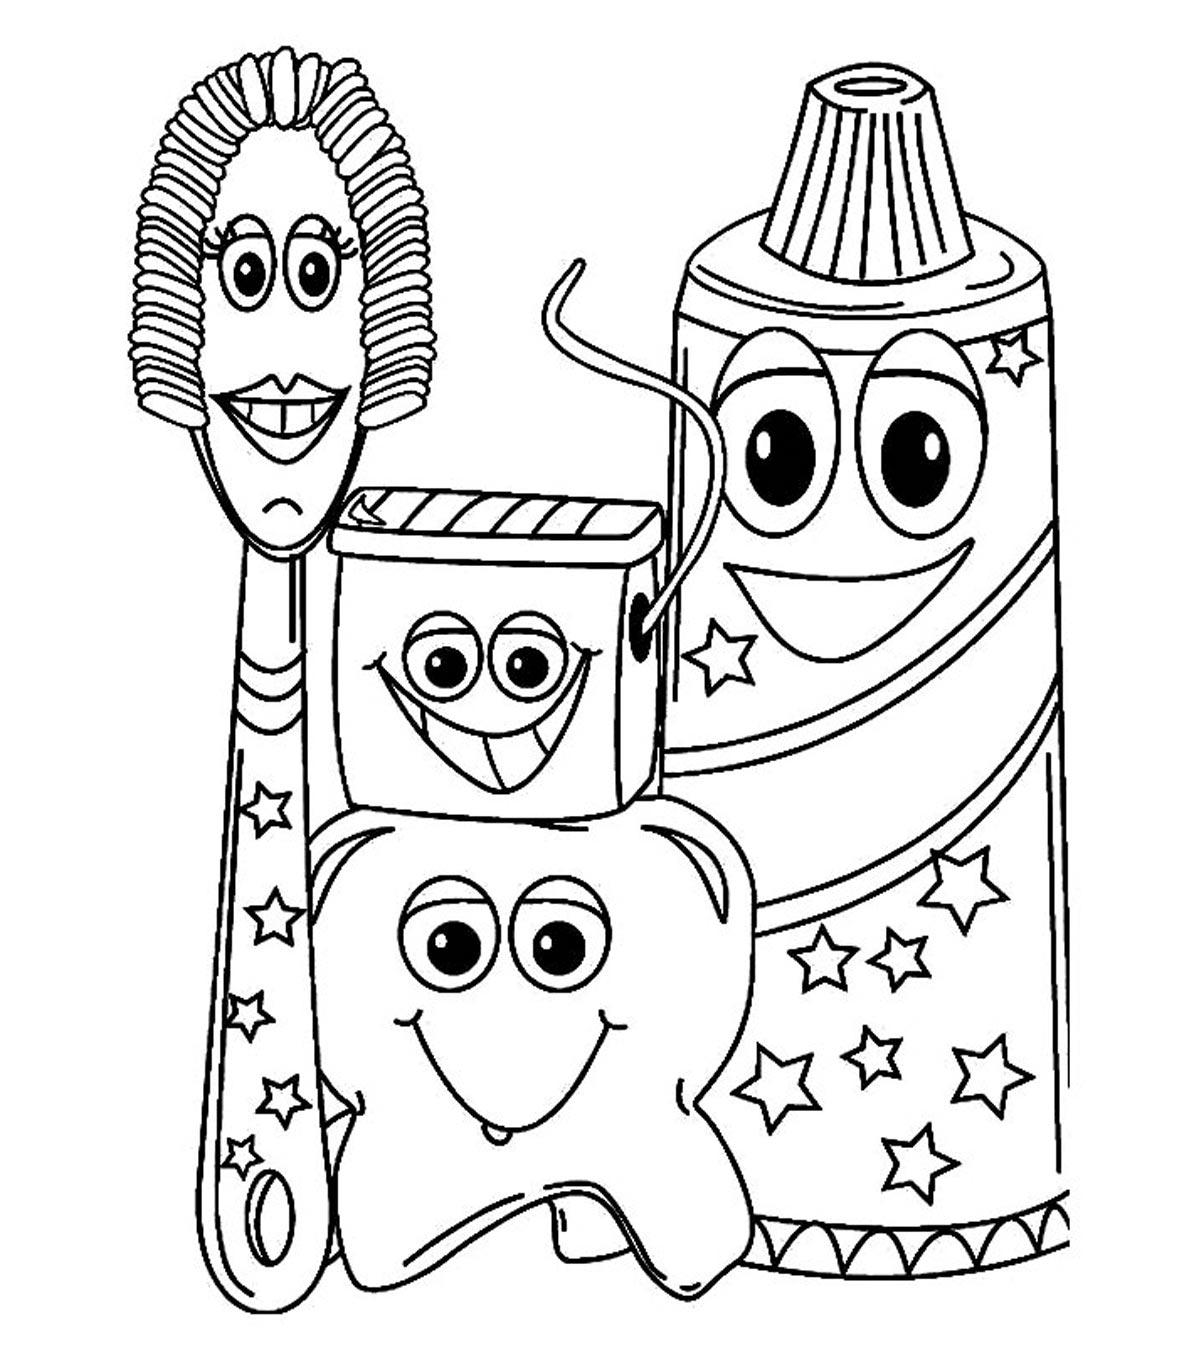 Coloring Book Pages – Every Child a Reader | 1350x1200